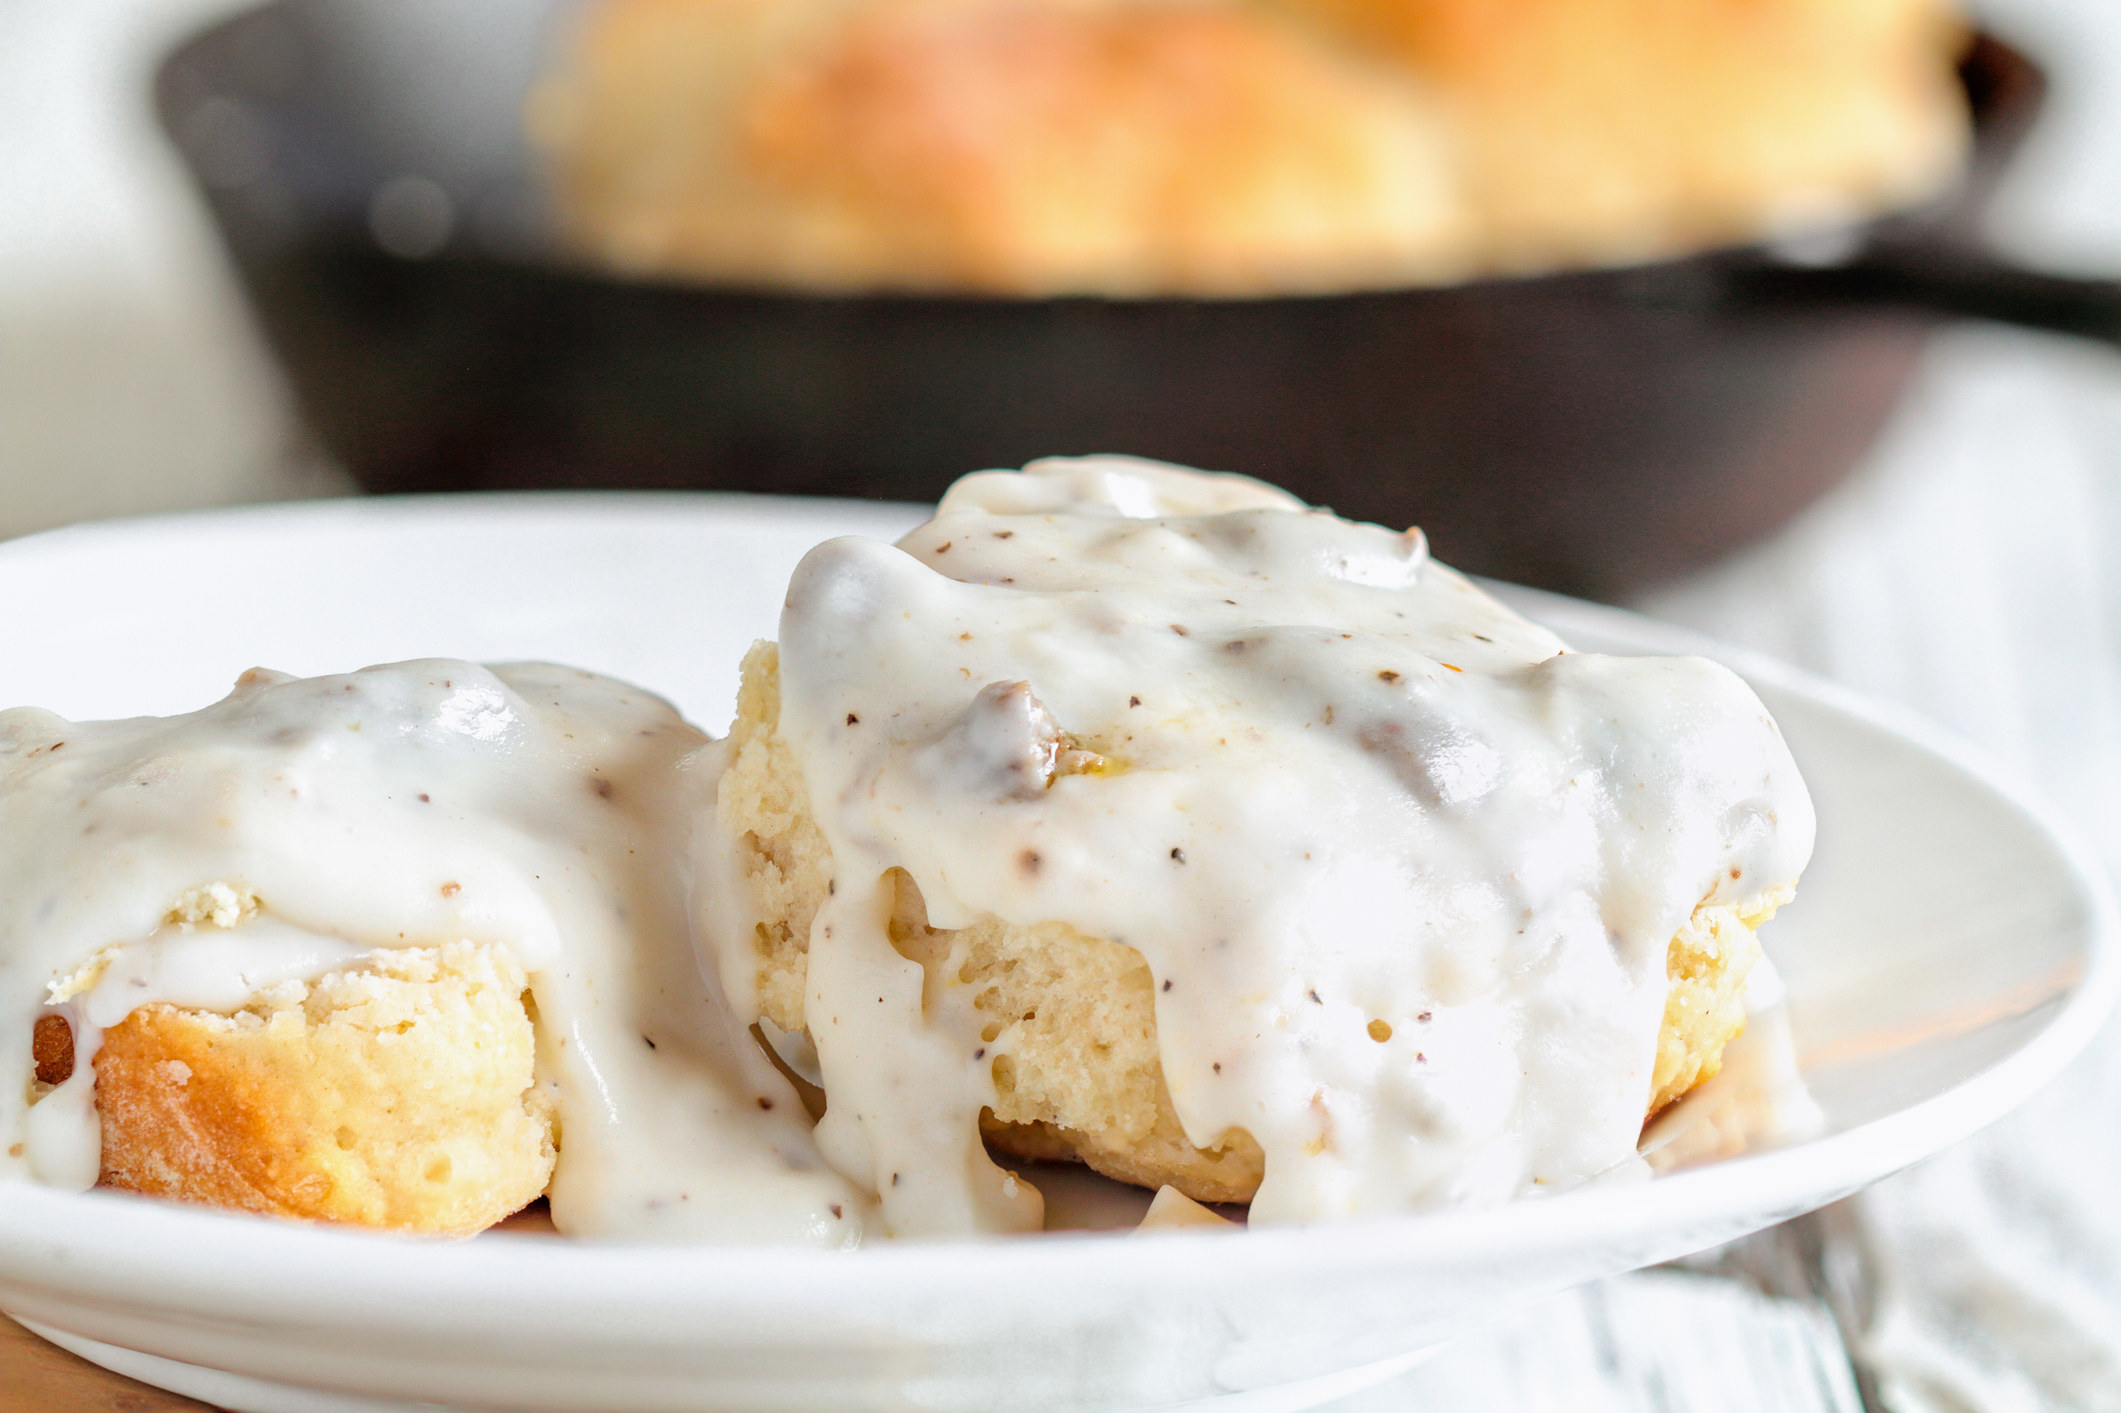 Two biscuits topped with gravy.